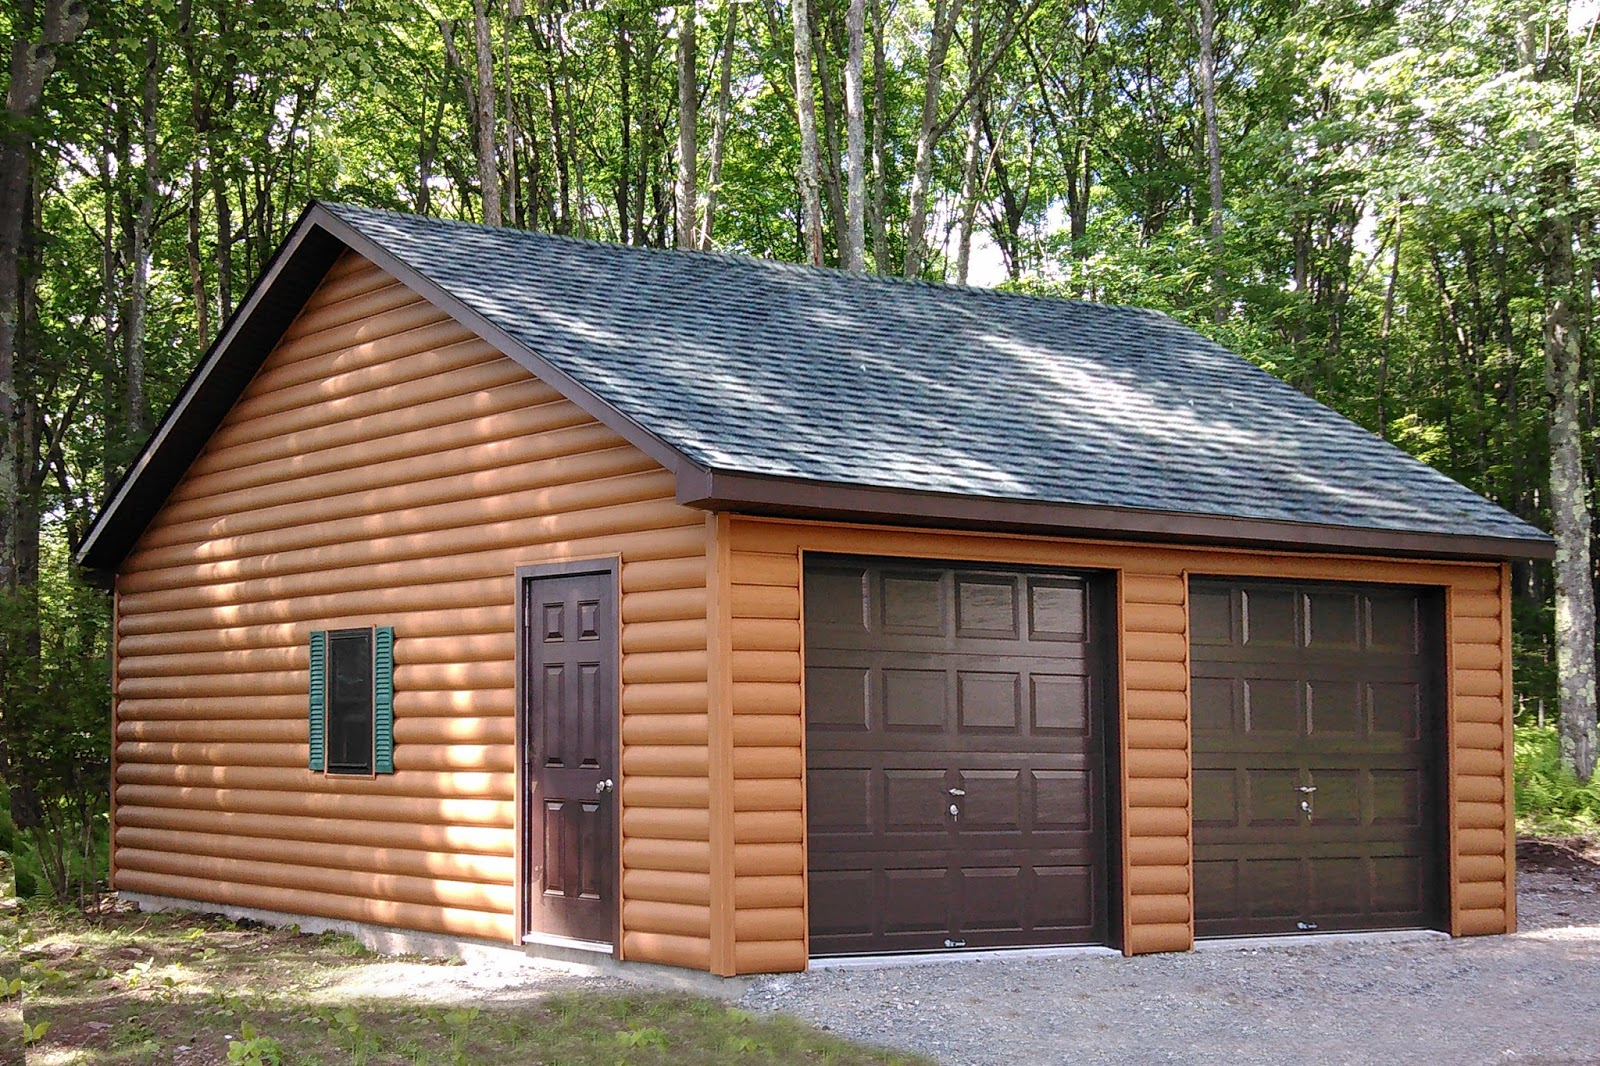 Prefab car garages for sale in pa nj ny ct de md va for How much to build a garage with loft